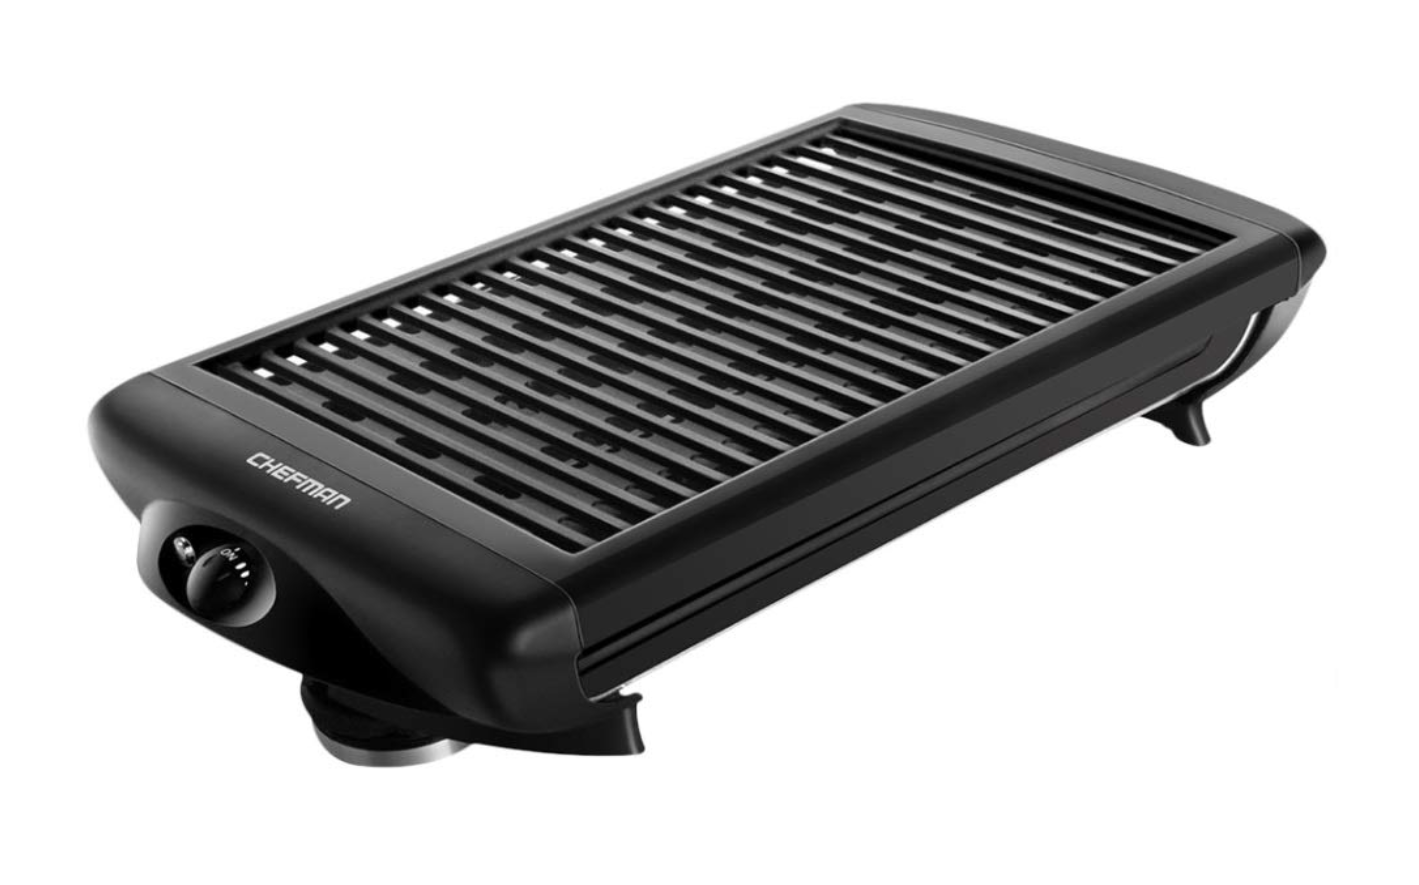 Chefman Electric Smokeless Indoor Grill with Non-Stick Cooking Surface